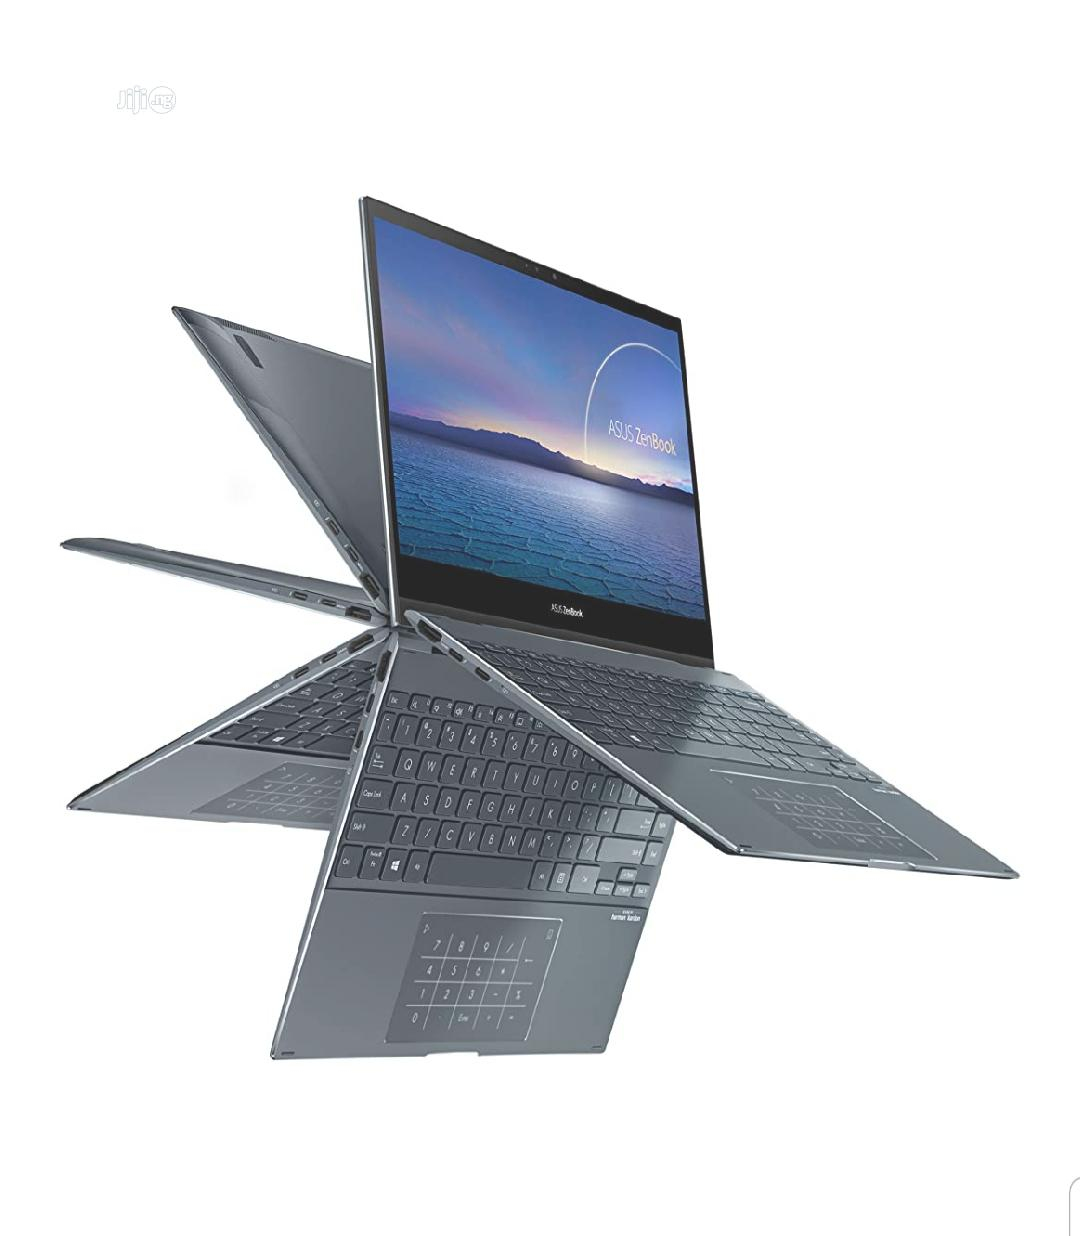 New Laptop Asus ZenBook Flip UX360CA 8GB Intel Core I5 SSD 512GB | Laptops & Computers for sale in Ikeja, Lagos State, Nigeria